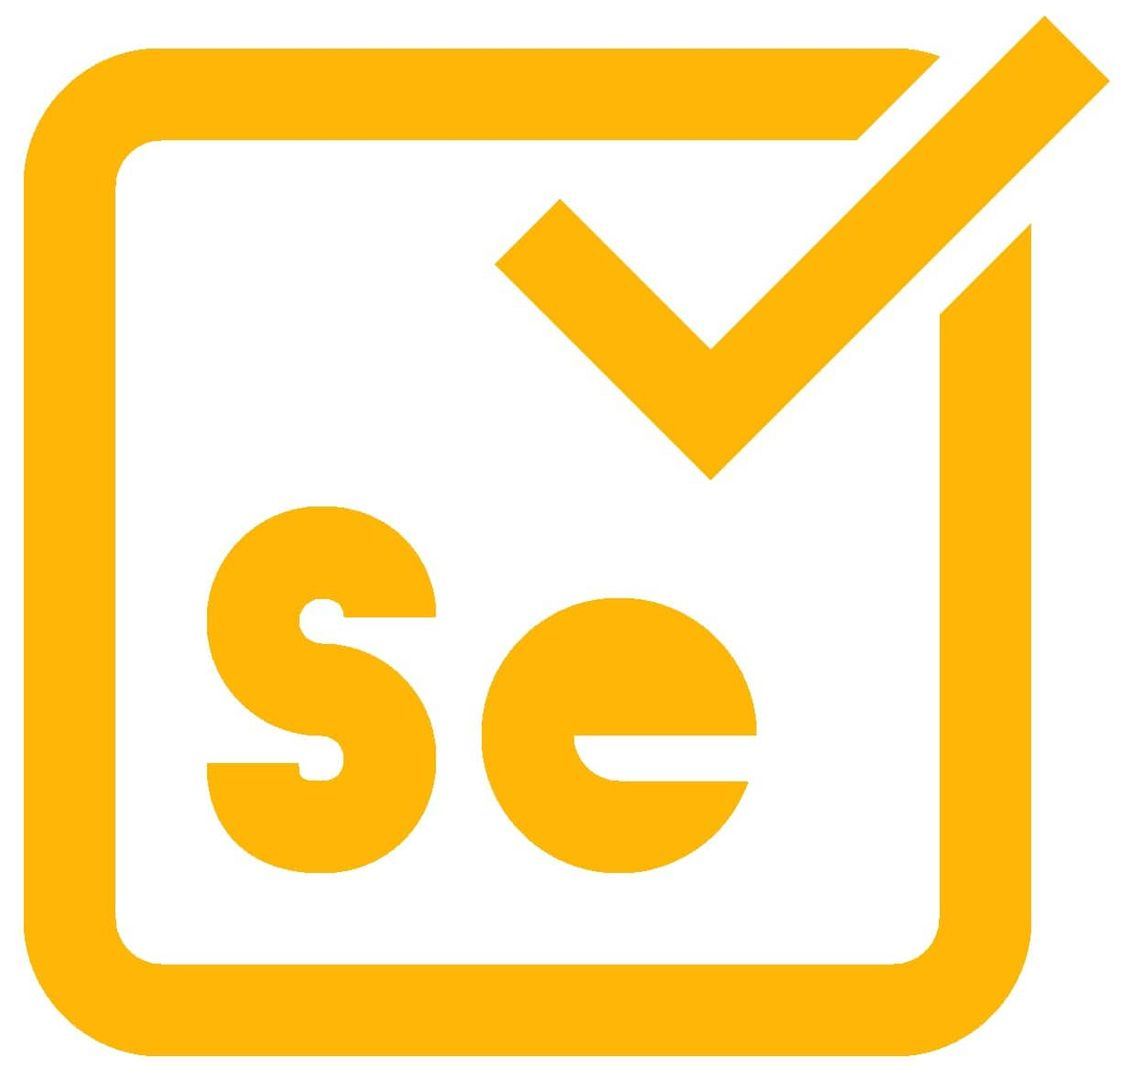 Selenium Training in BTM, Marathahalli, Bangalore | Software Testing Courses in Bangalore, BTM, Marathahalli